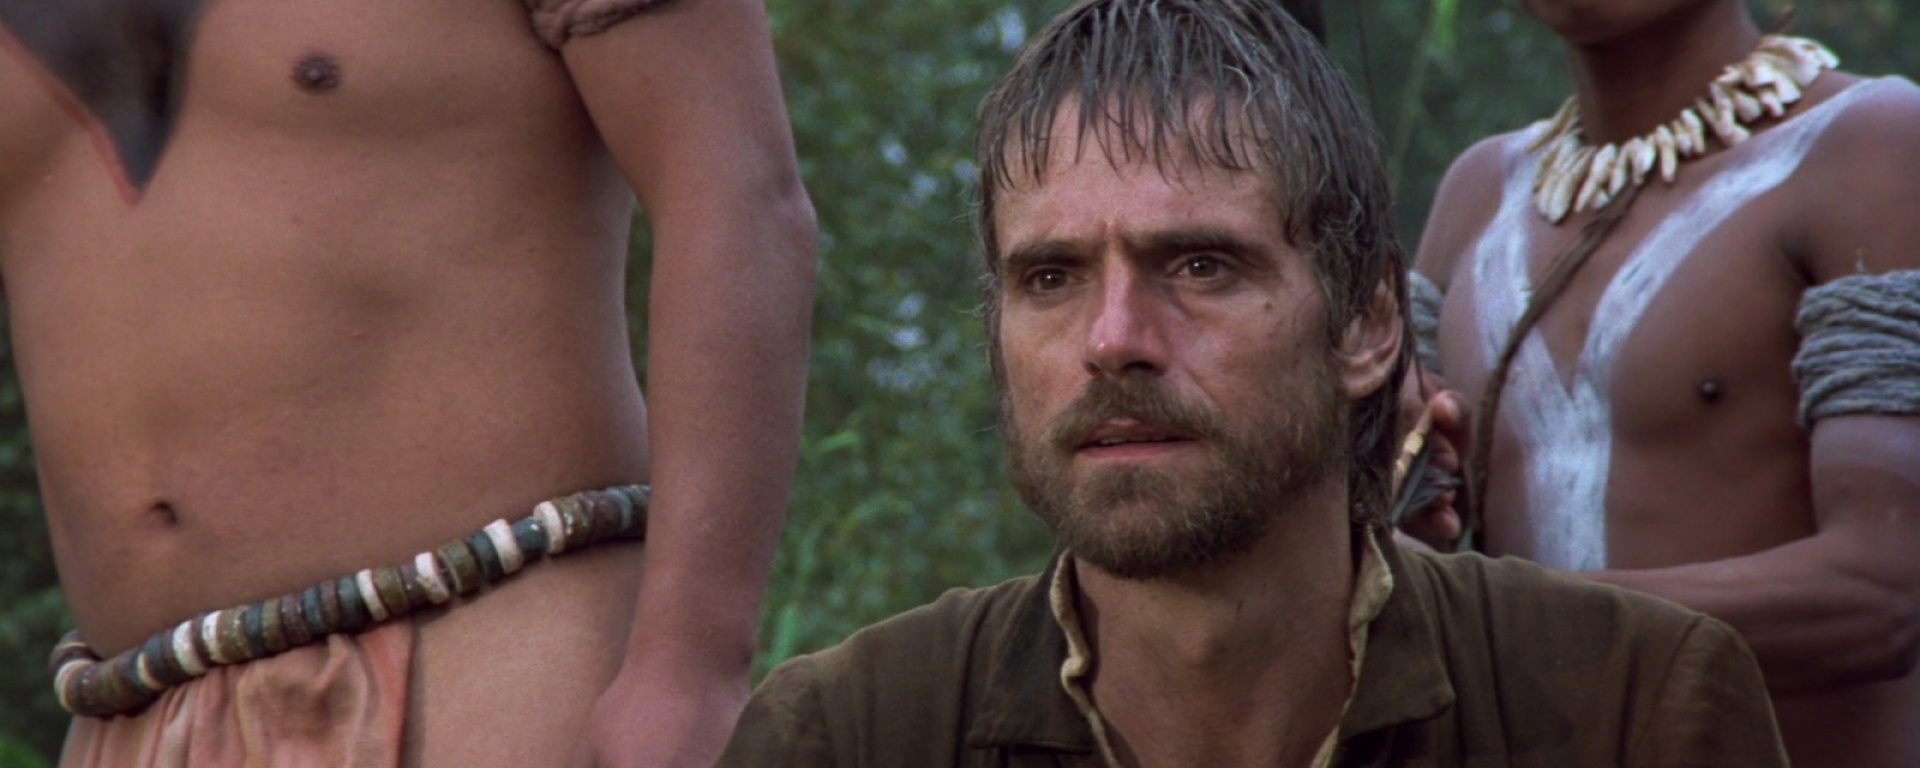 Jeremy Irons in 1986's 'The Mission' / Warner Bros.